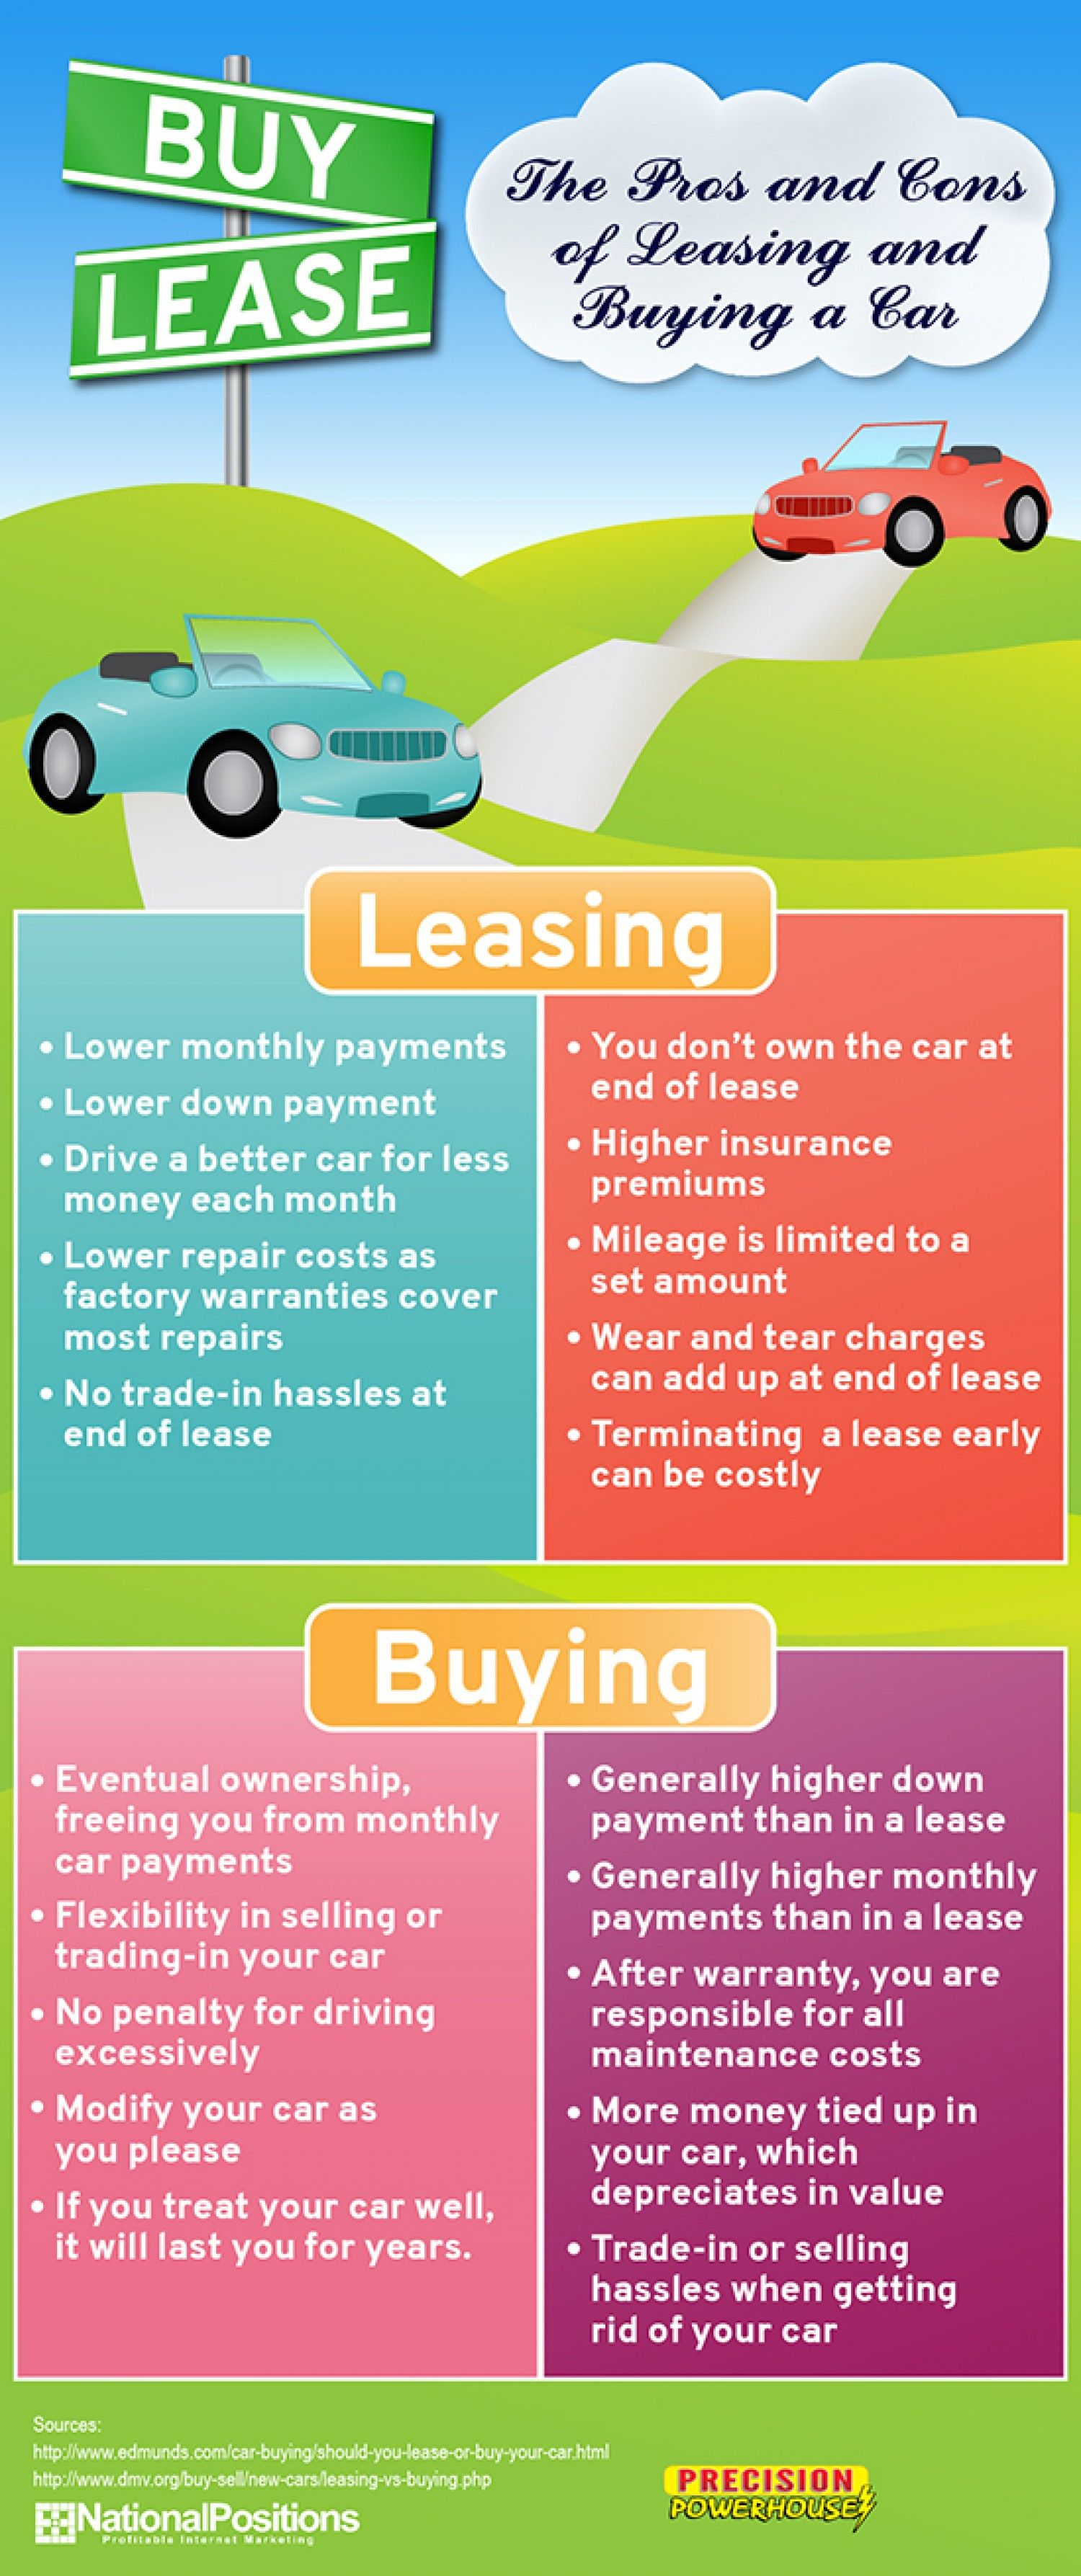 Pros And Cons Of Leasing And Buying A Car Car Buying Car Lease